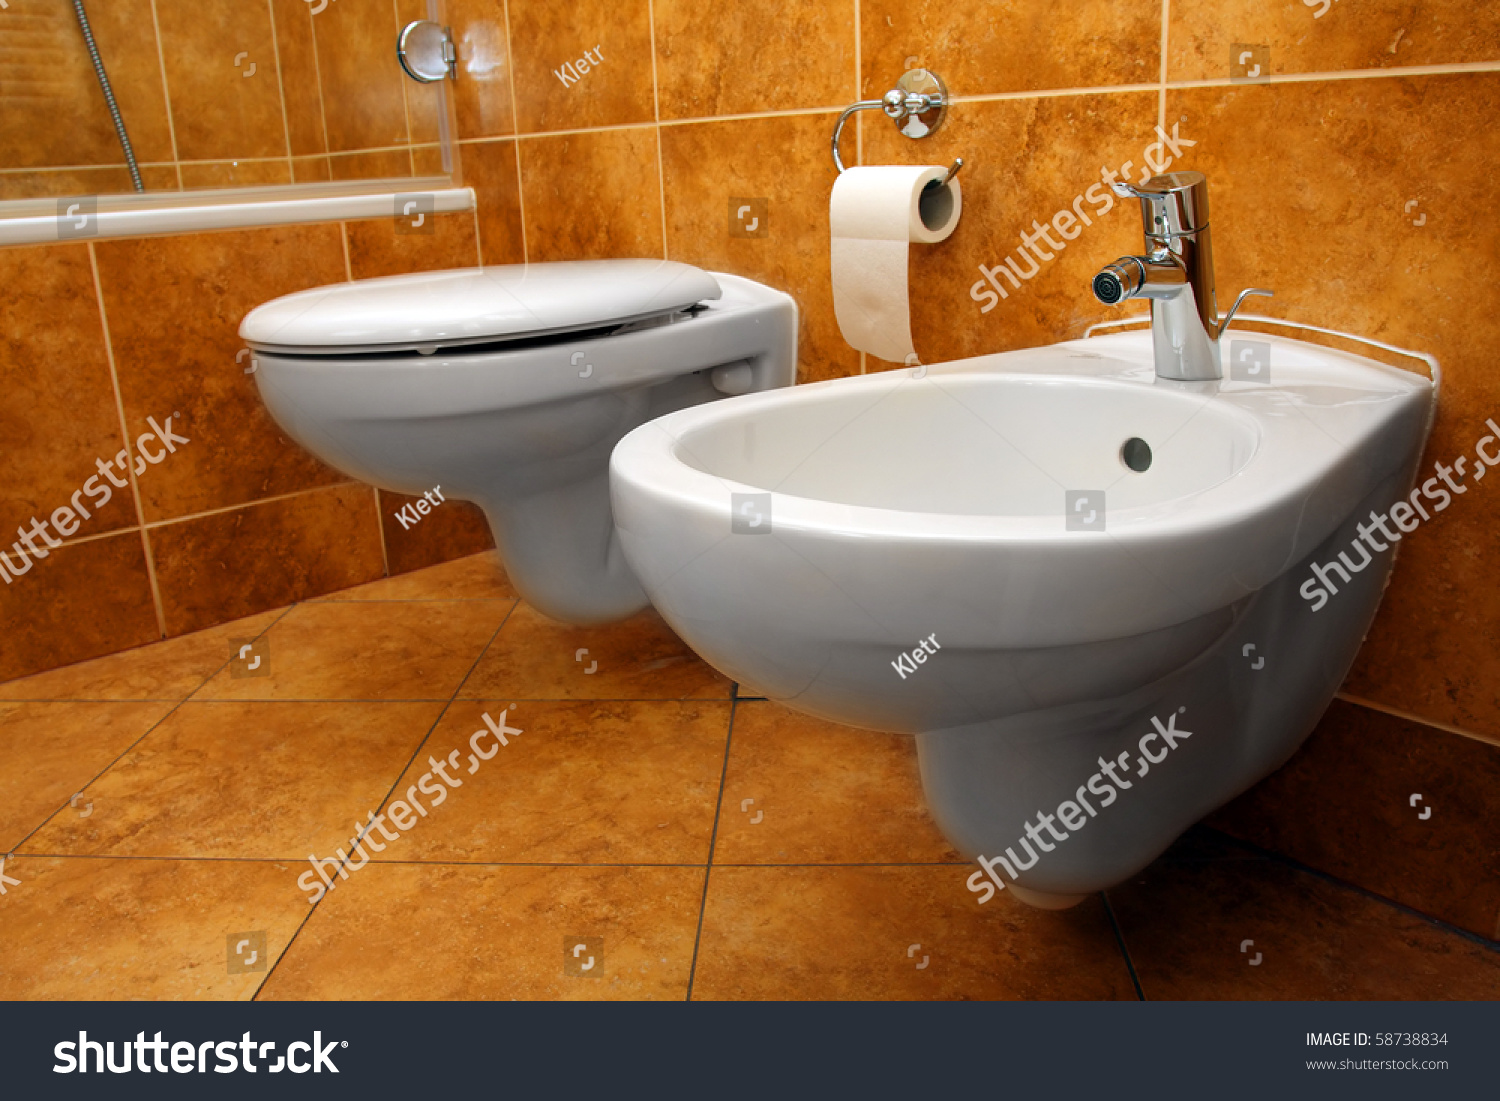 Luxury bathroom closeup - the water-closet and bidet. | EZ Canvas